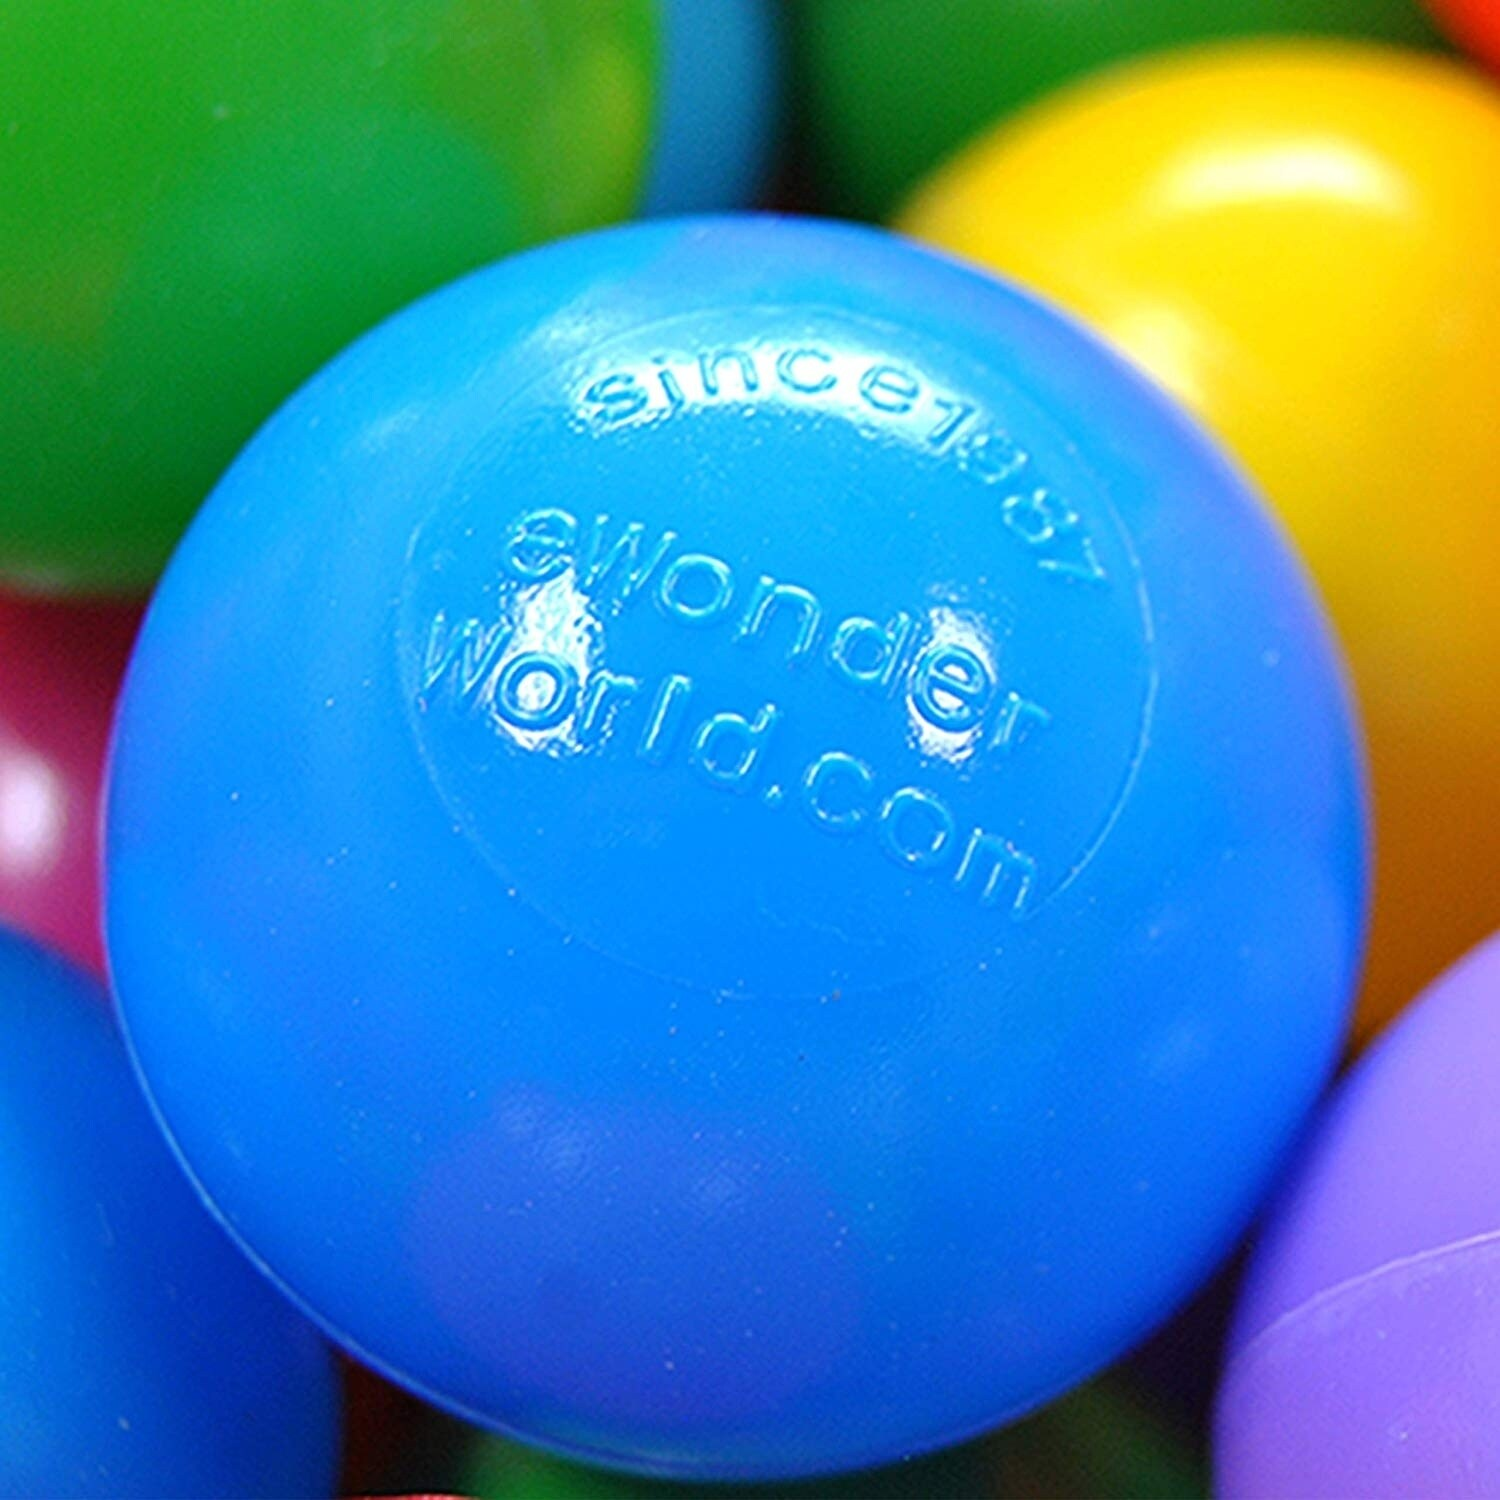 EWONDERWORLD 200 Count Non-Toxic Crush Proof Plastic Play Balls for Ball Pit with 8 Vibrant Colors and Blue Storage Mesh Bag